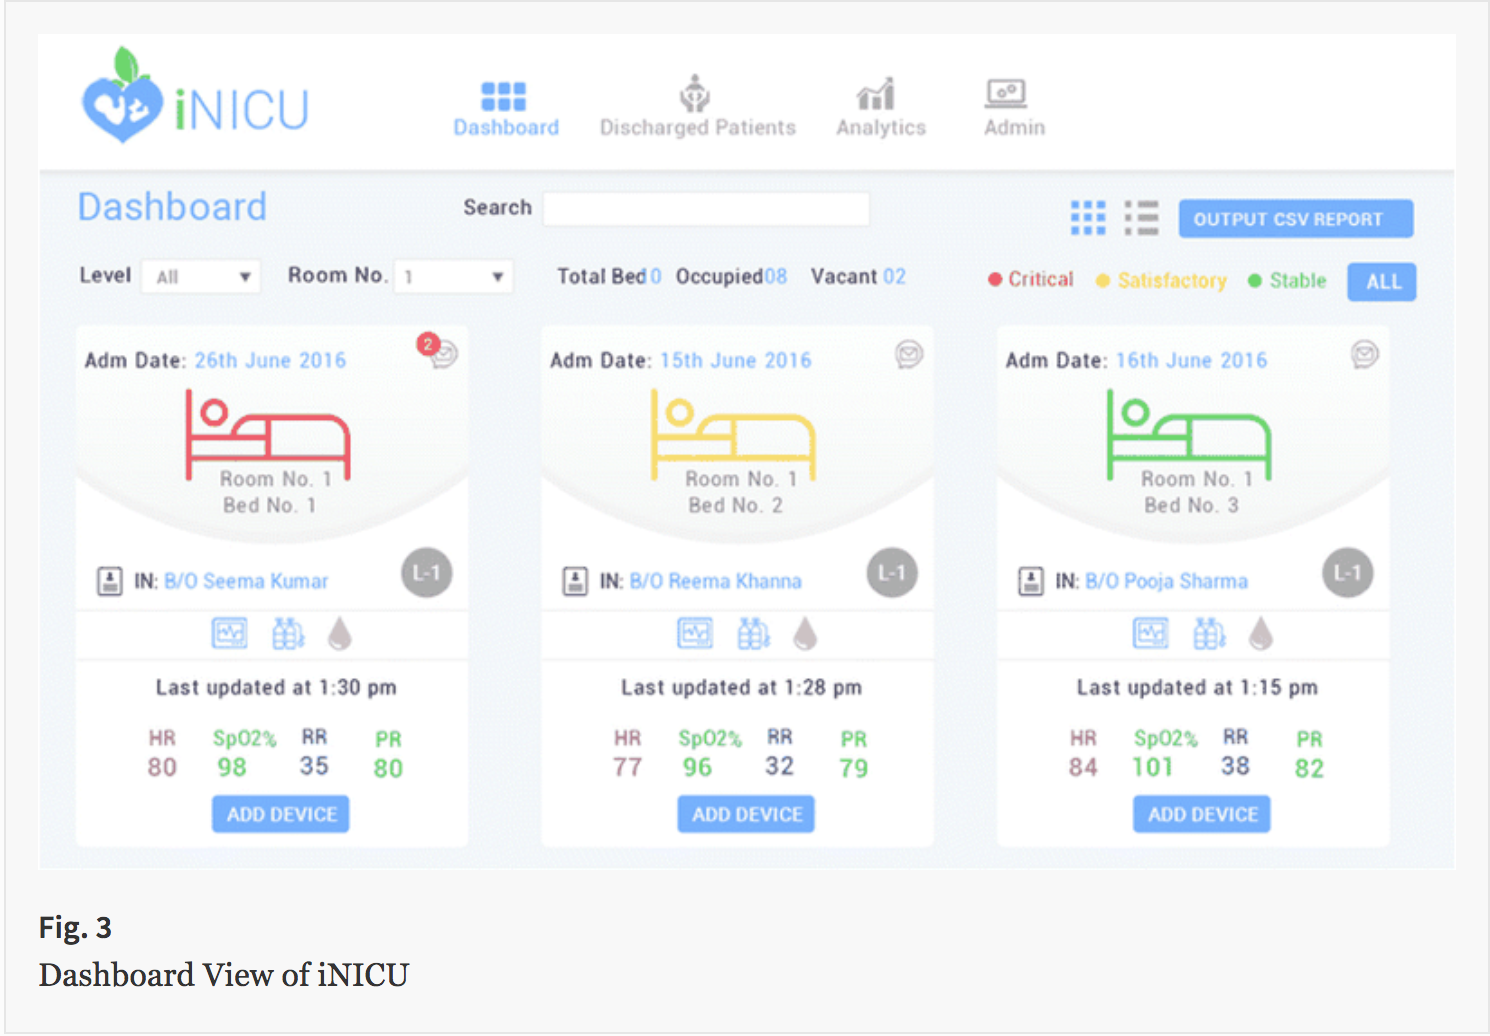 iNICU dashboard utilizing card format for scannability